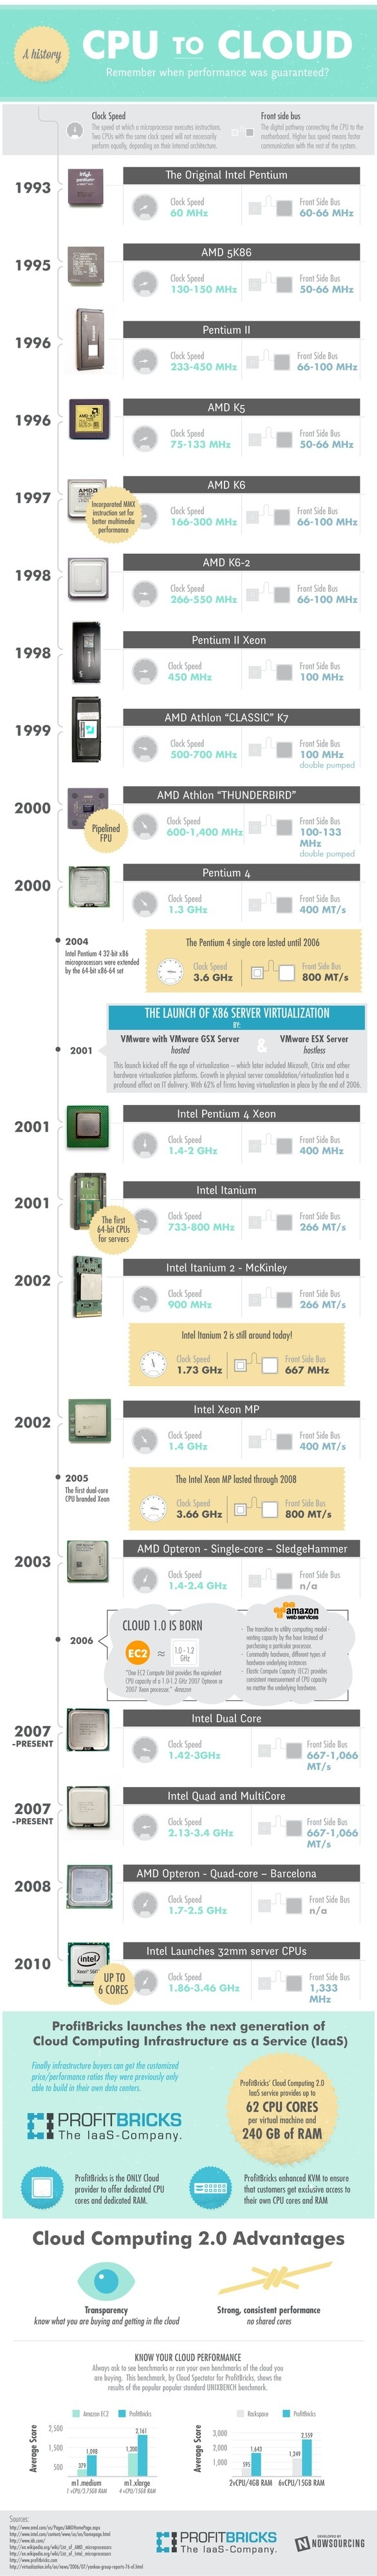 CPU to Cloud #infographic